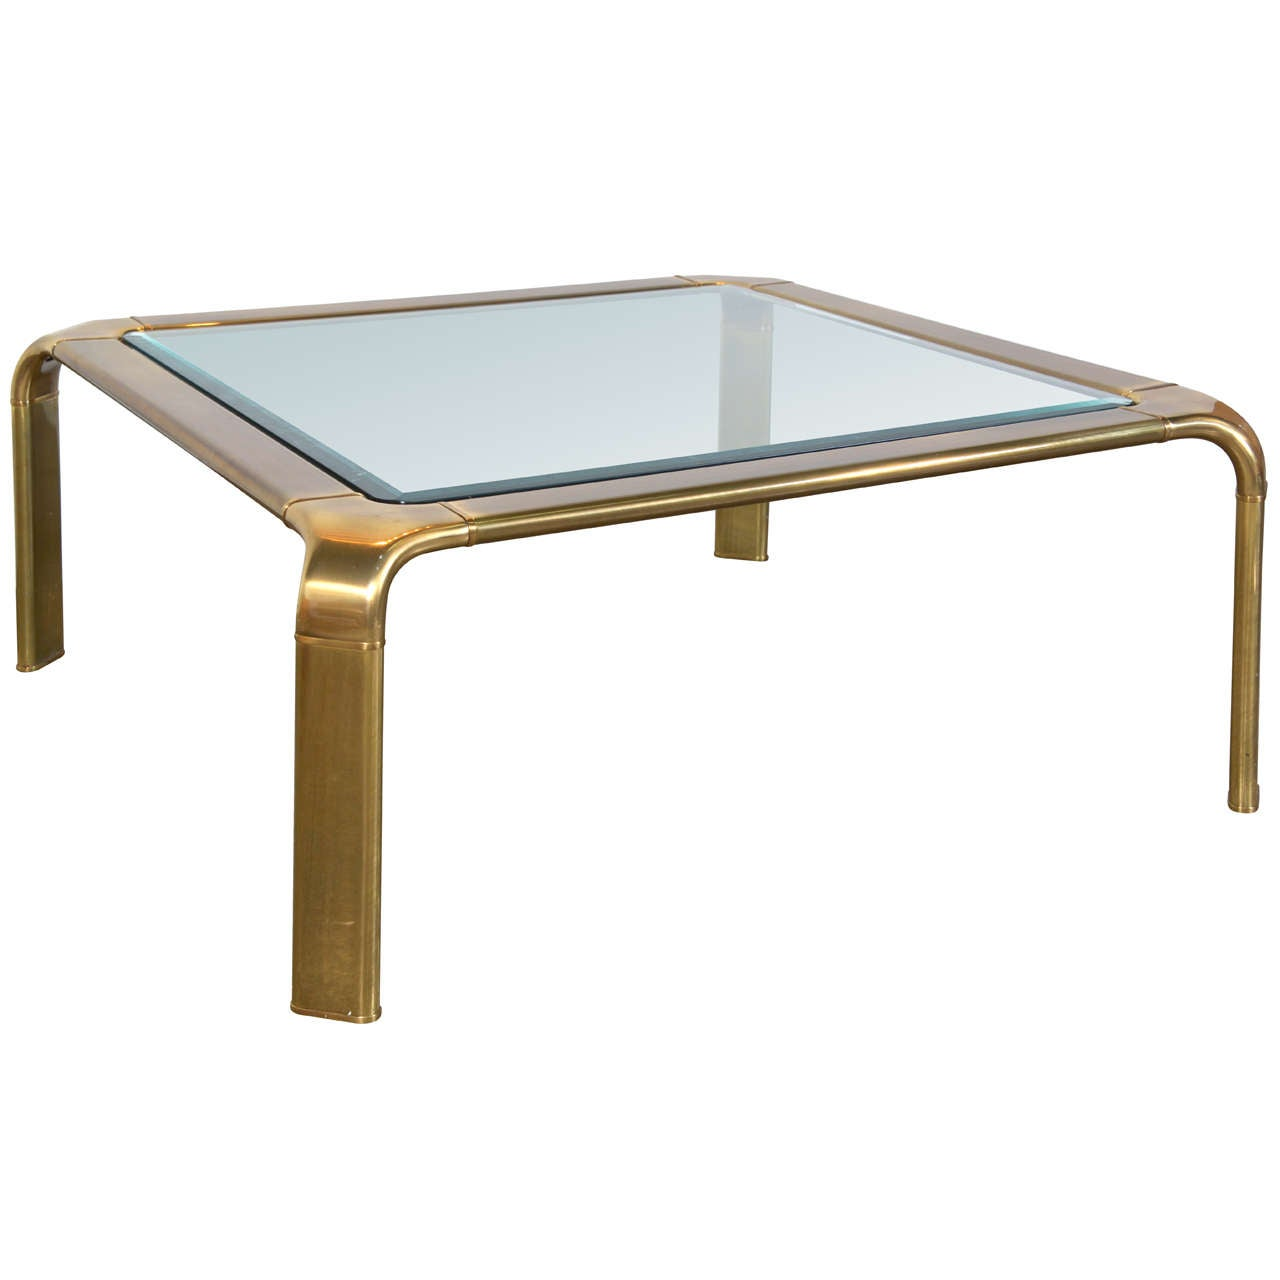 john widdicomb square brass coffee table with glass top at